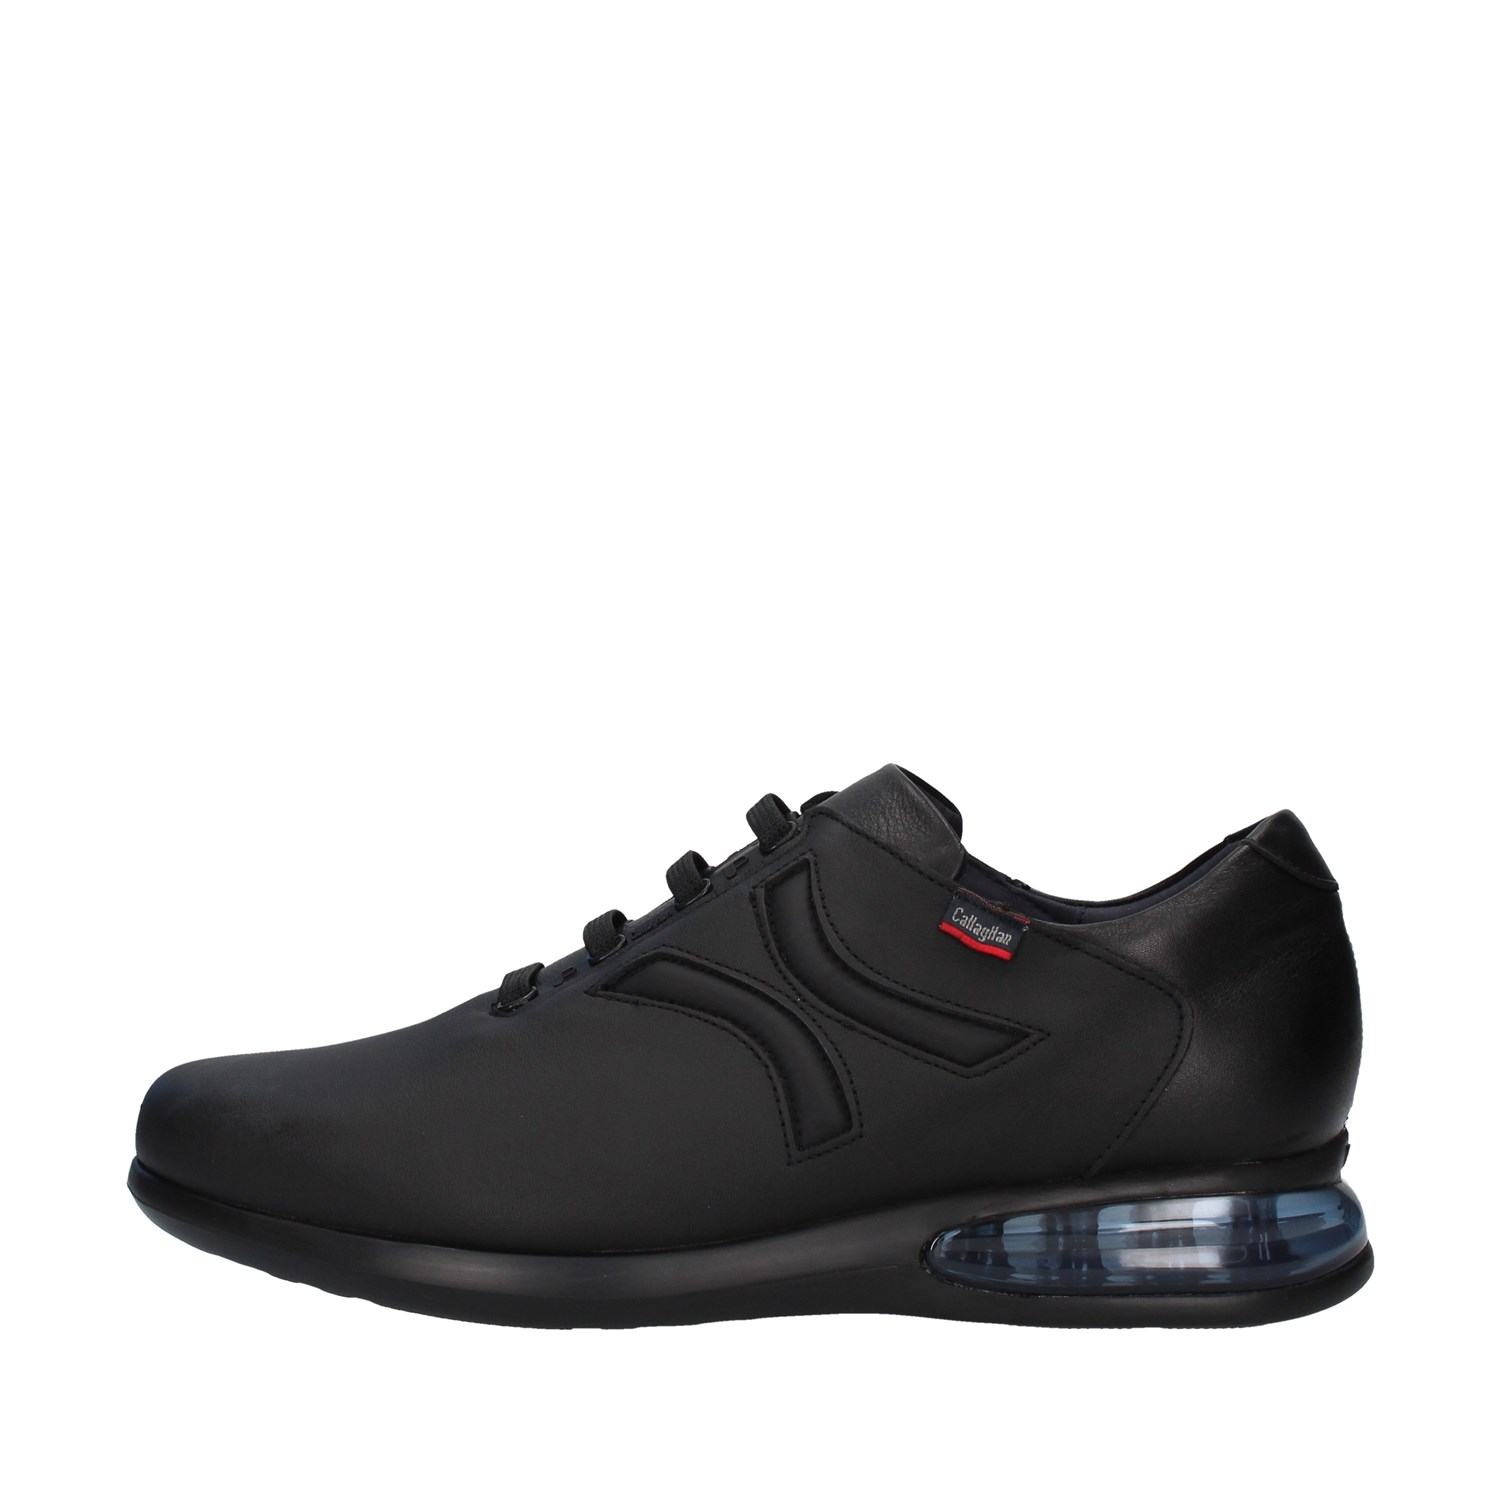 Callaghan Shoes Man low BLACK 40900